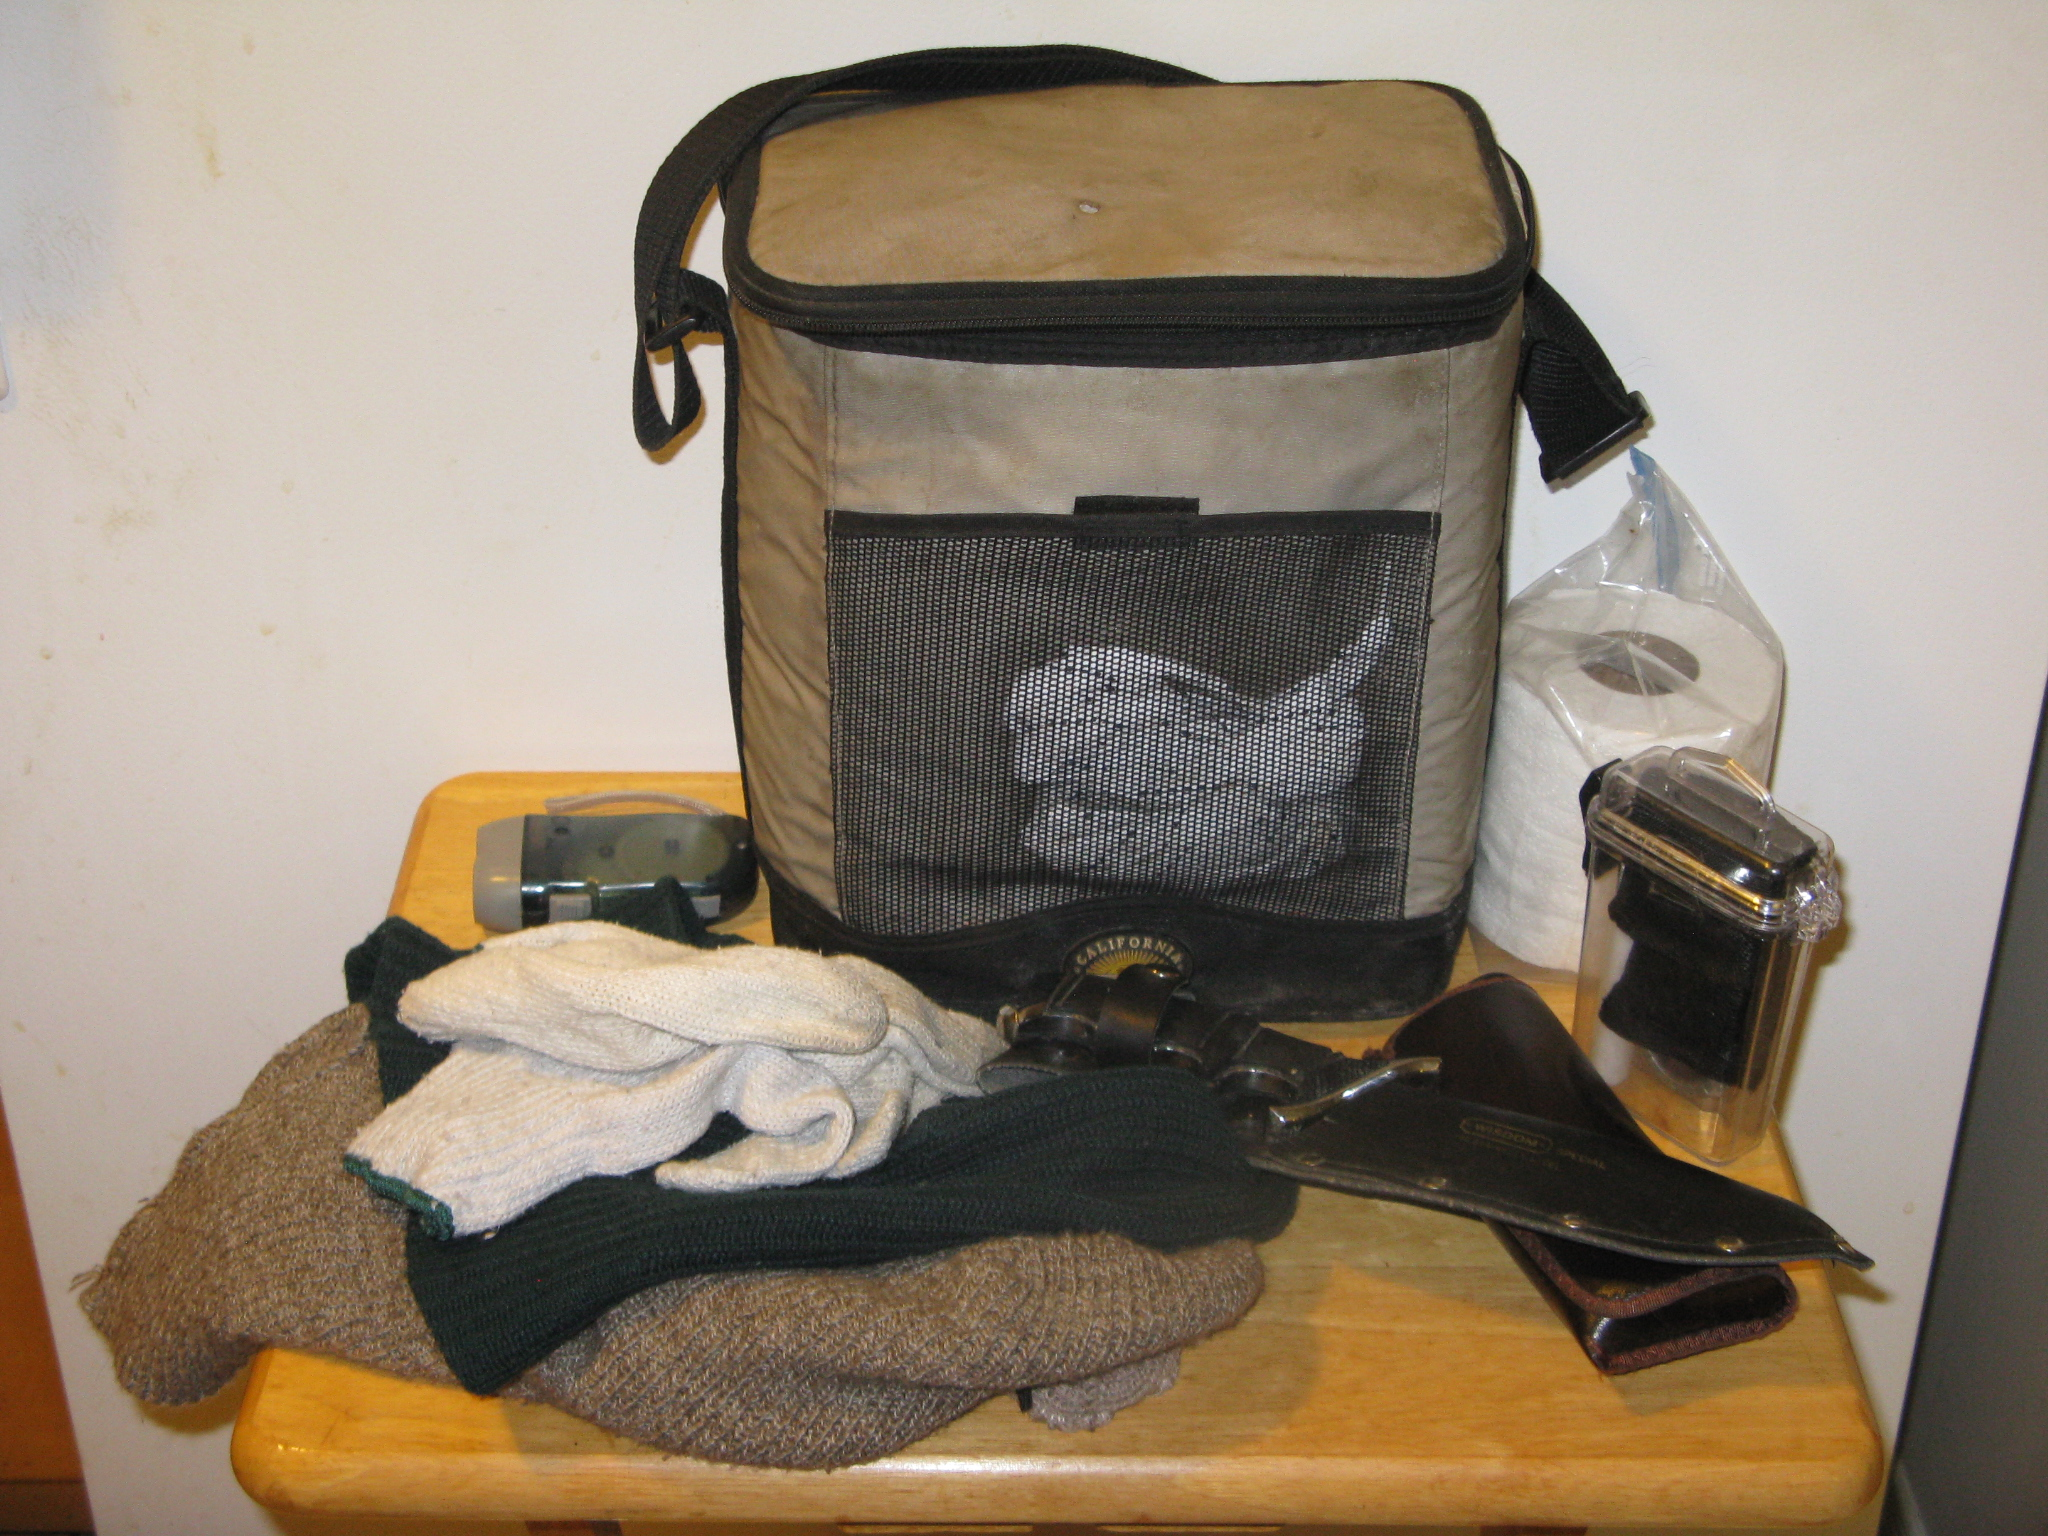 Picture of The Emergency Kit